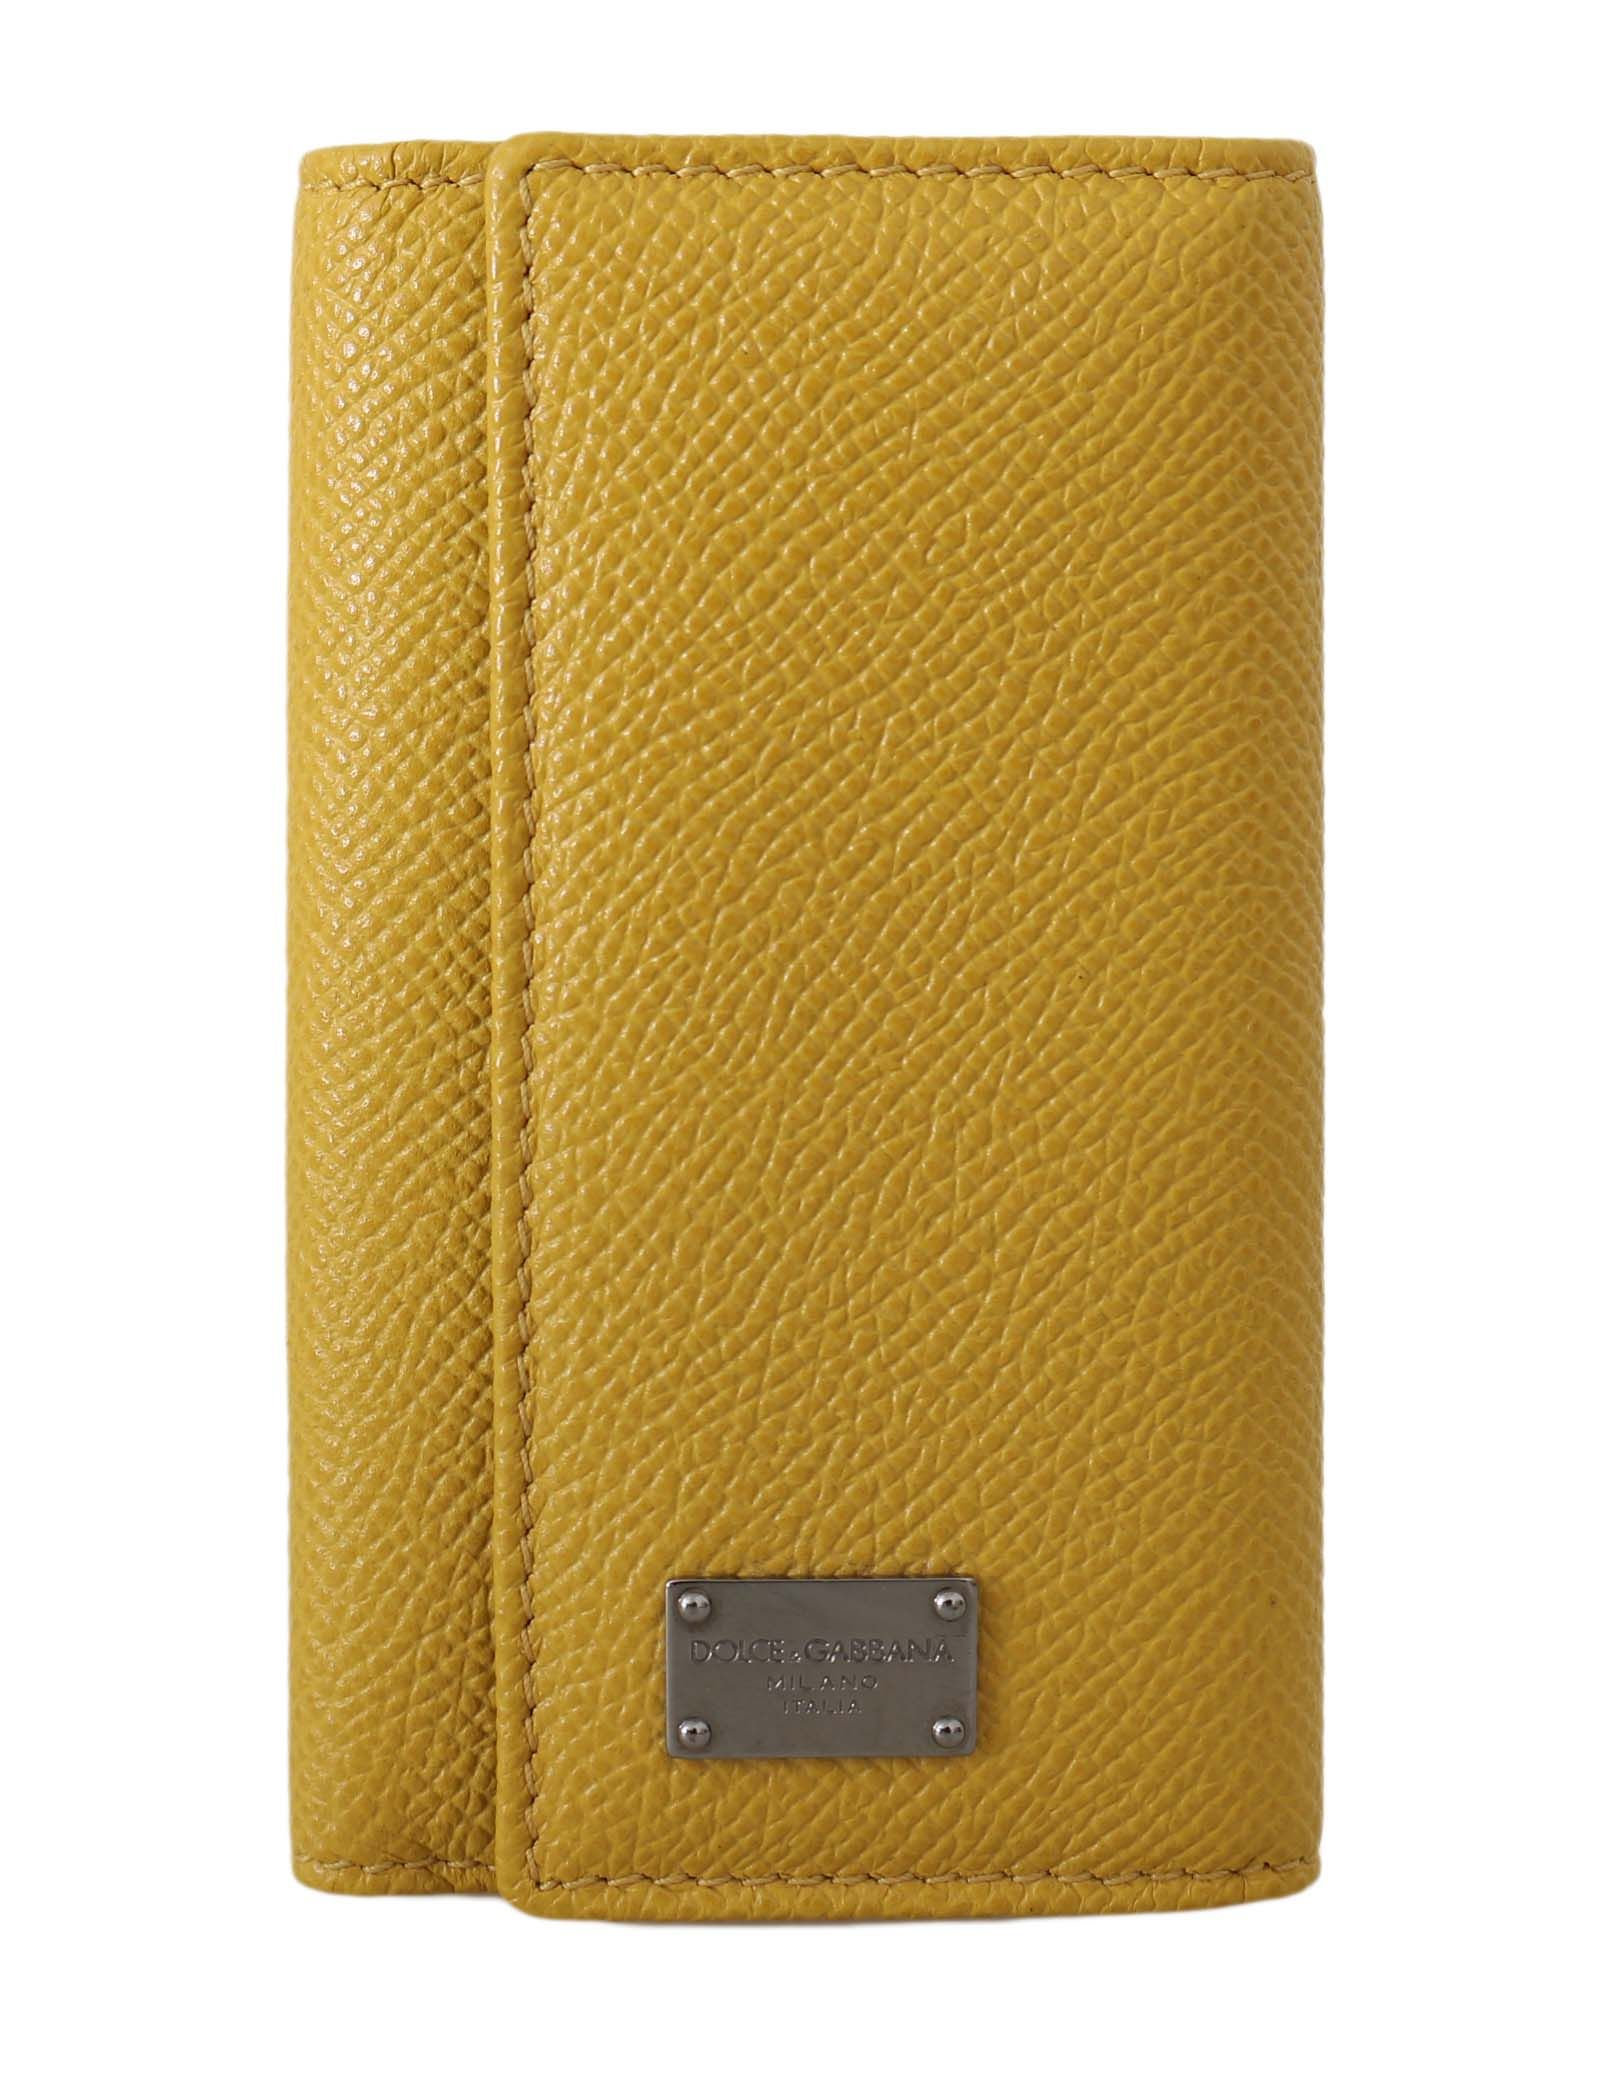 Dolce & Gabbana Yellow Leather Wallet Case Mens Finder Chain Keyring